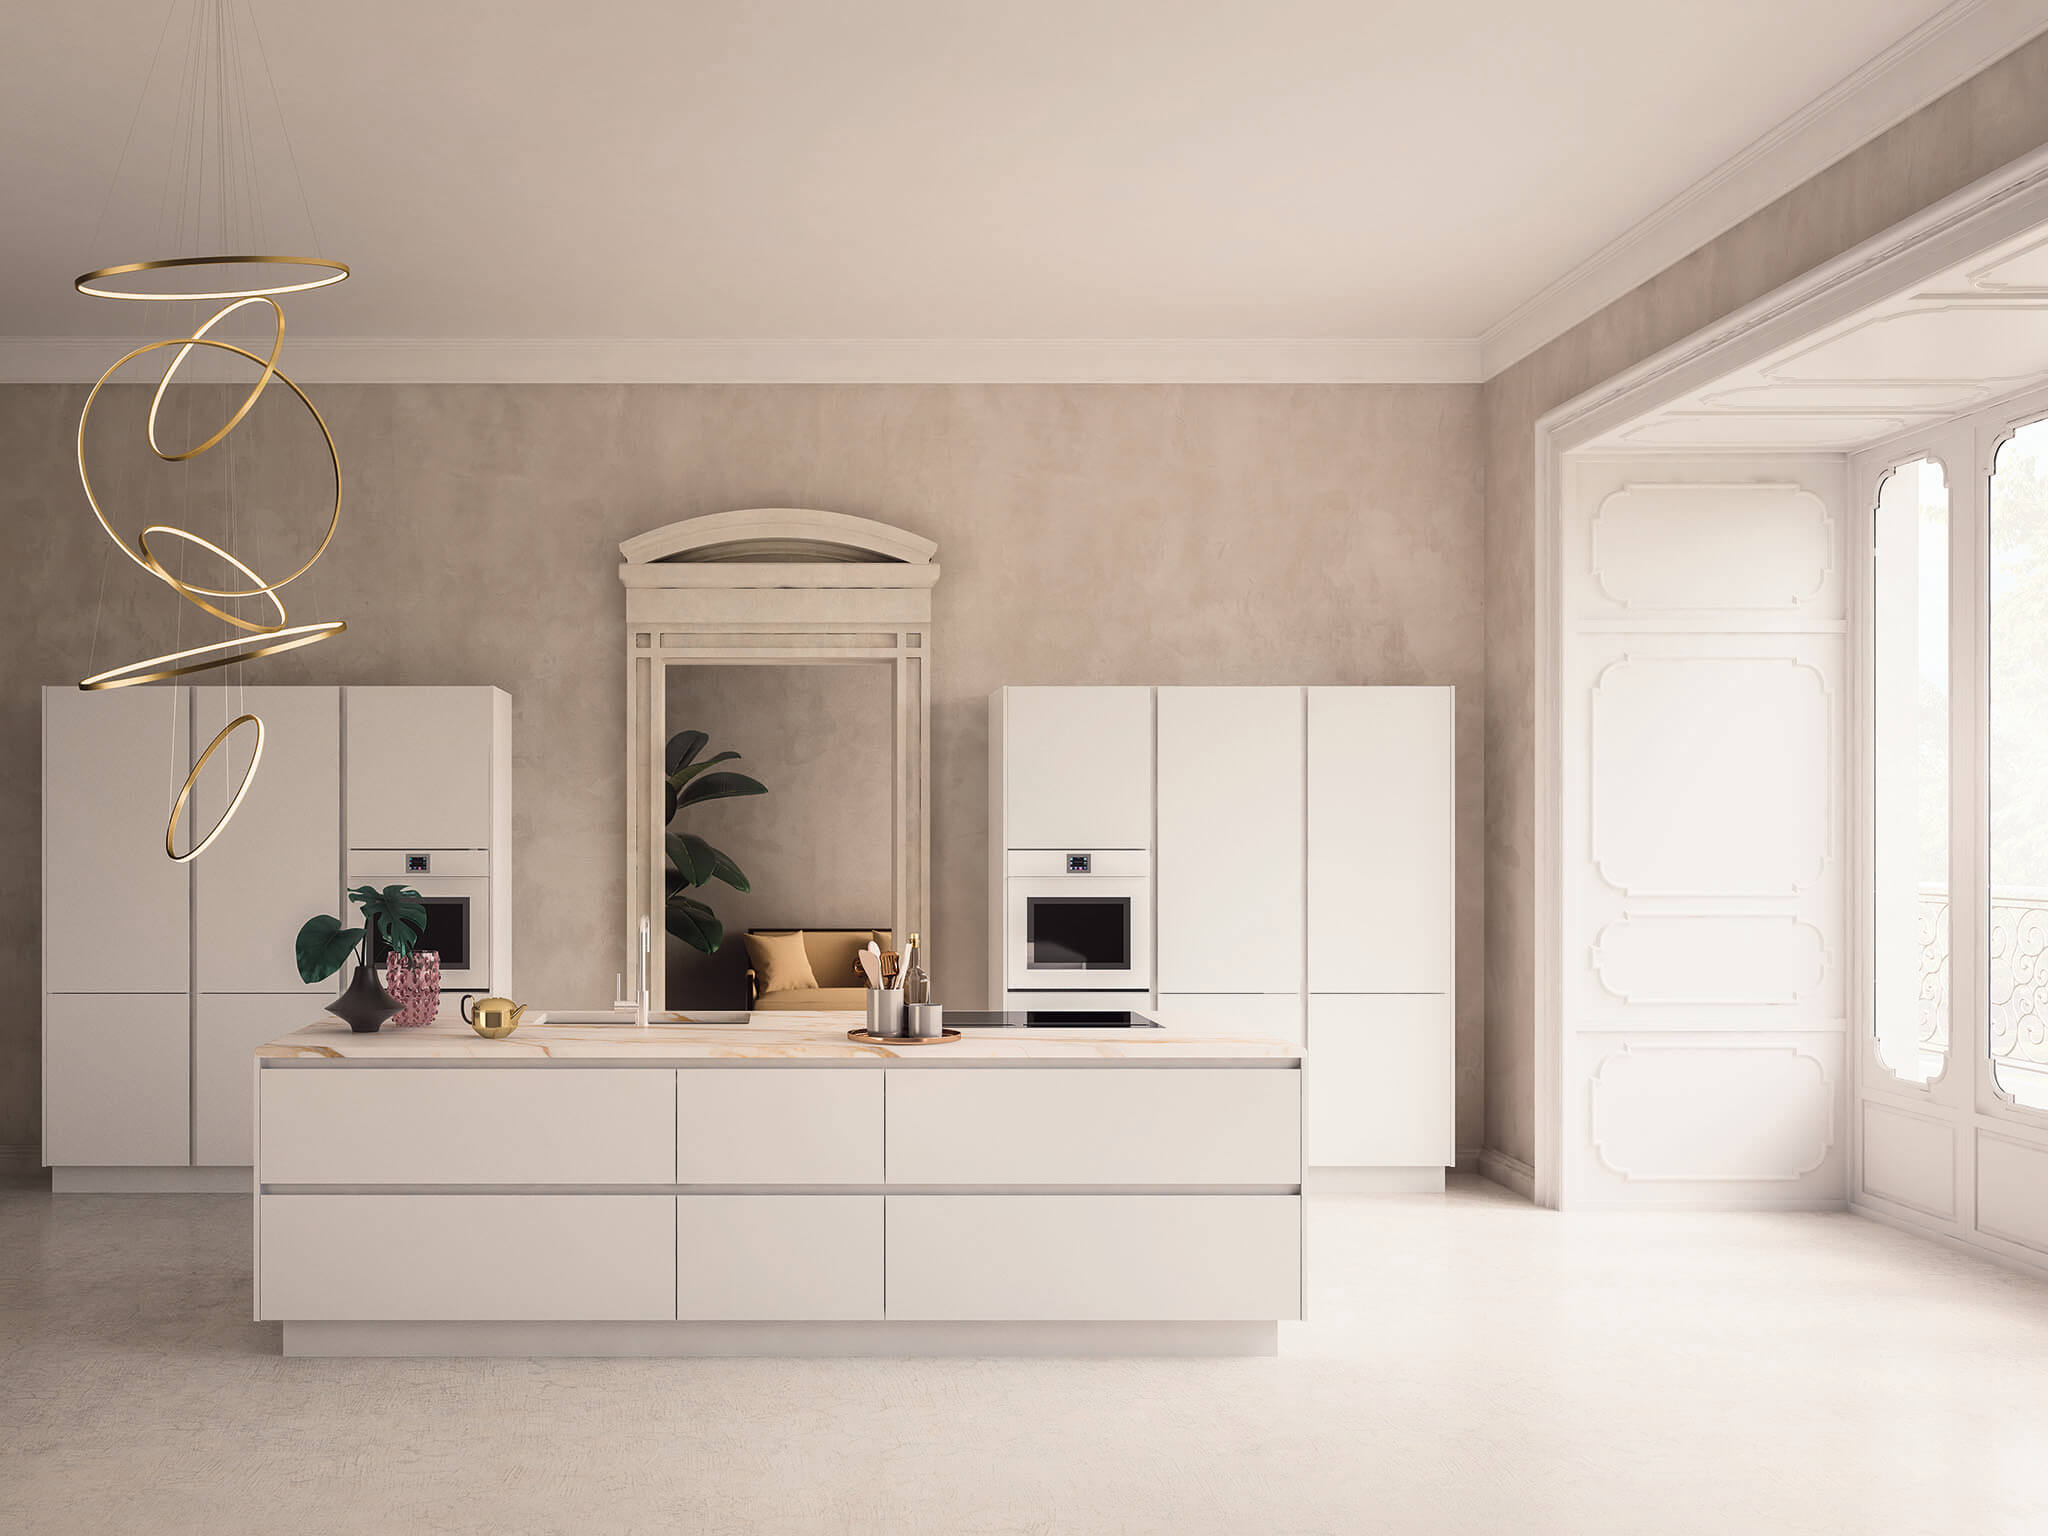 Kate contemporary kitchen cabinet white | Chicago